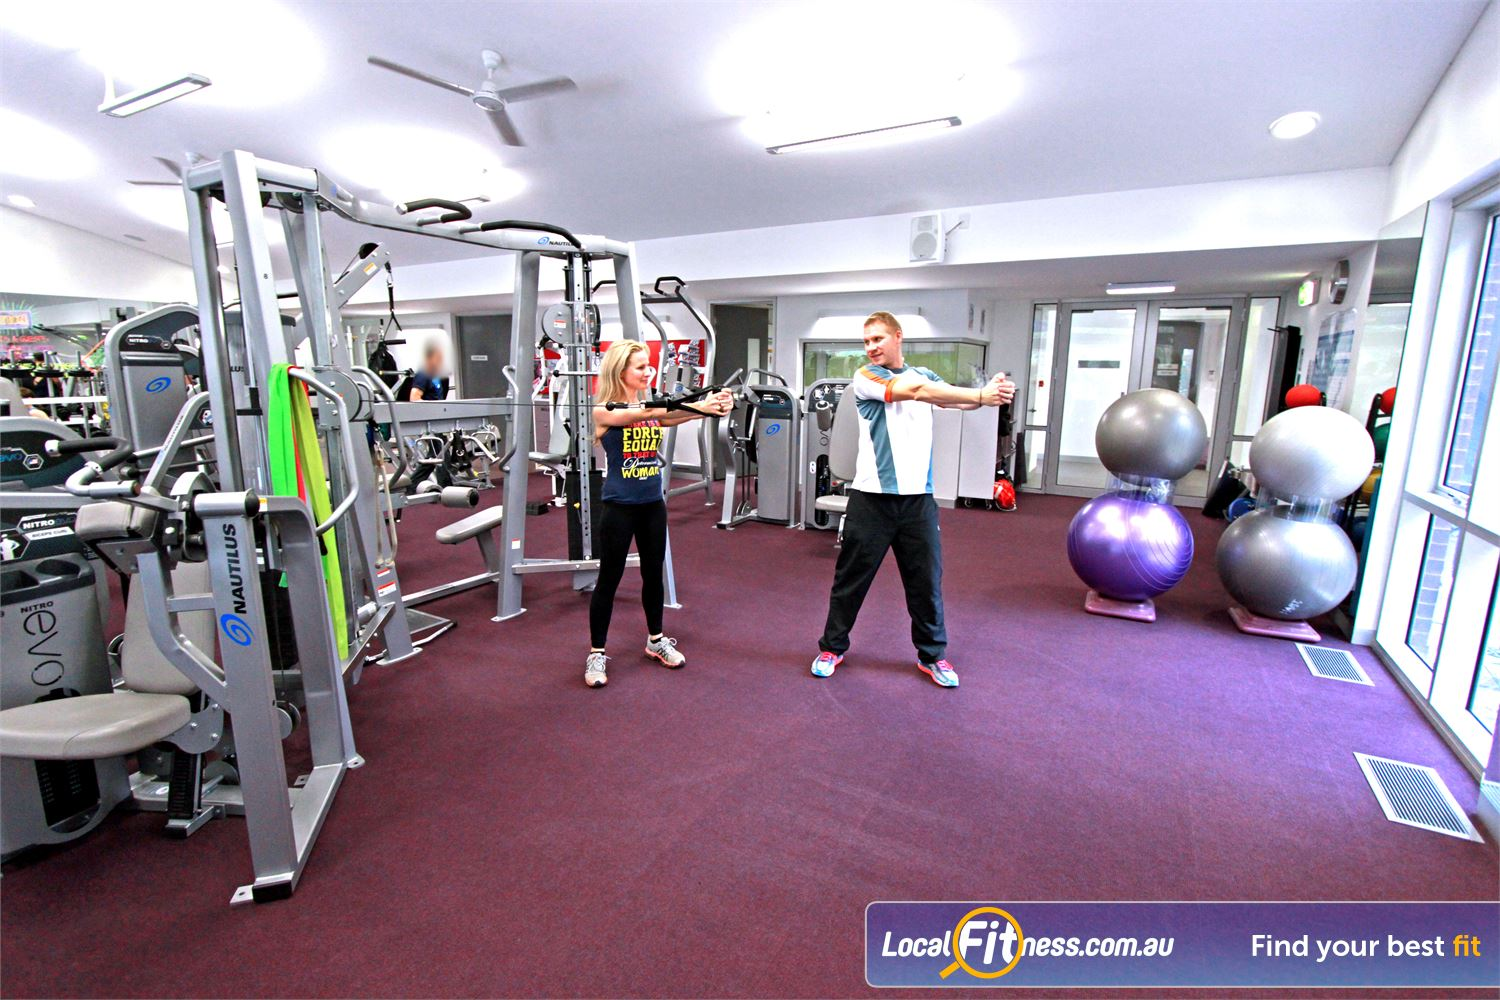 Monbulk Aquatic Centre Near Narre Warren East Monbulk personal trainers will teach you the right way to train.